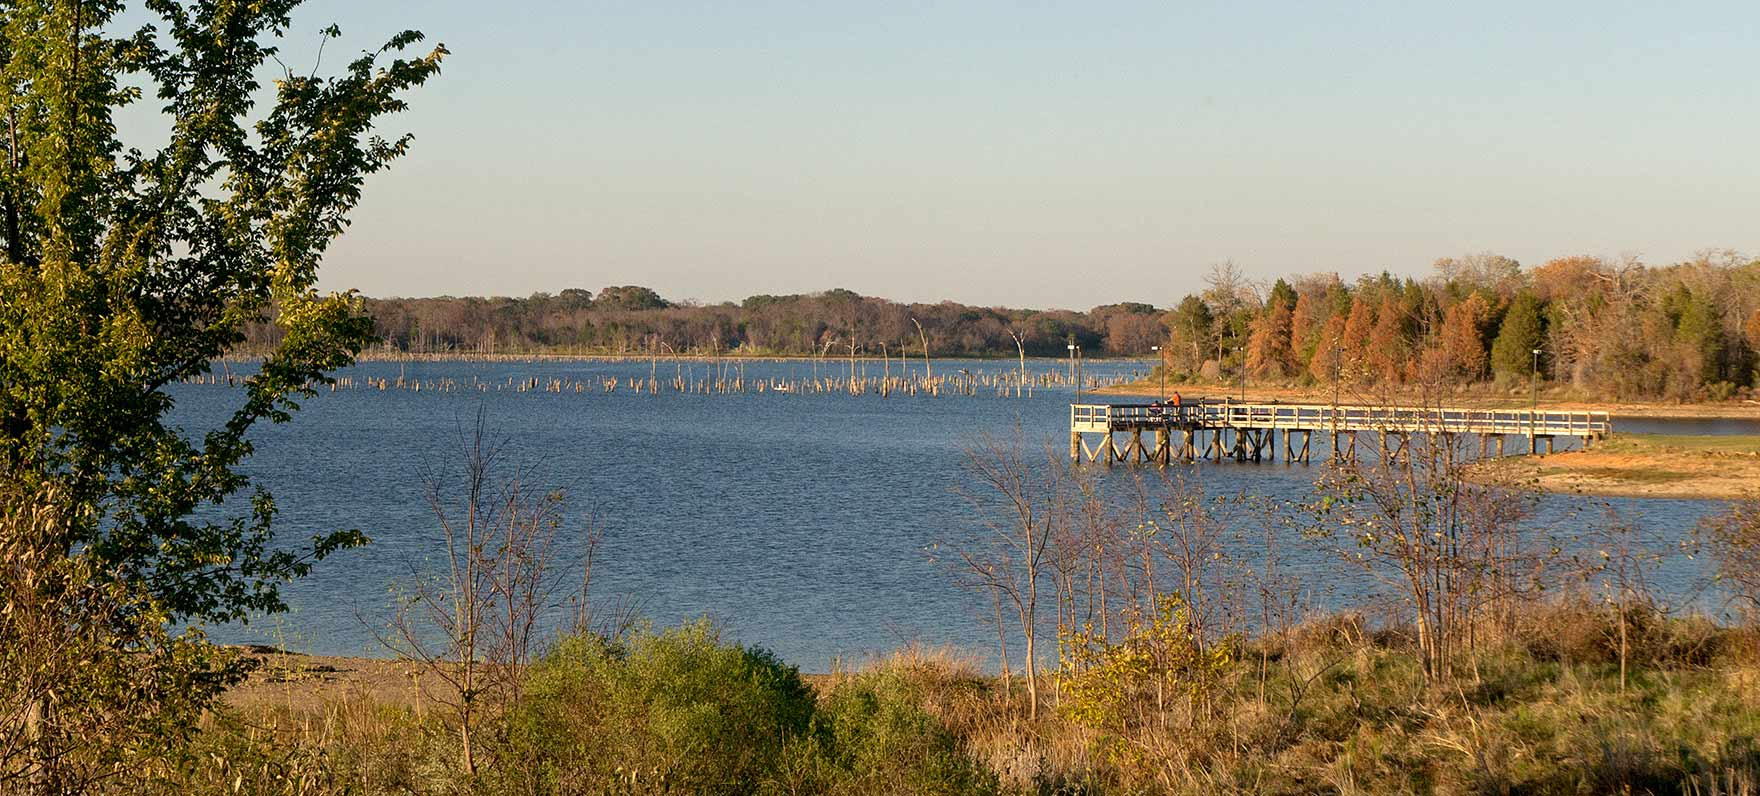 Long shot of fishing pier at Purtis Creek State Park in East Texas.